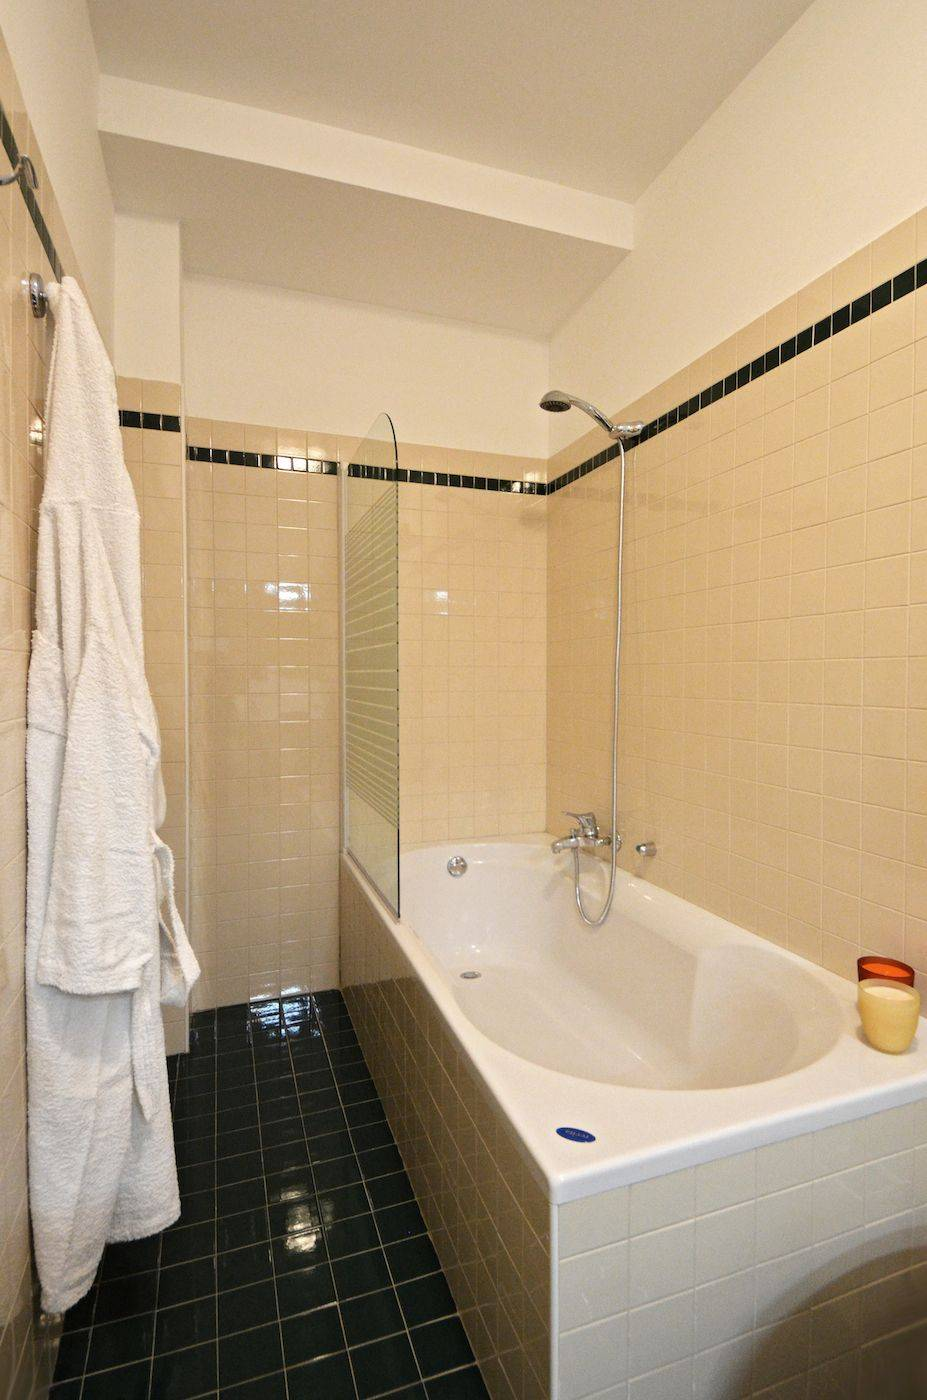 while the master bathroom has a bathtub and give access to a walk-in wardrobe